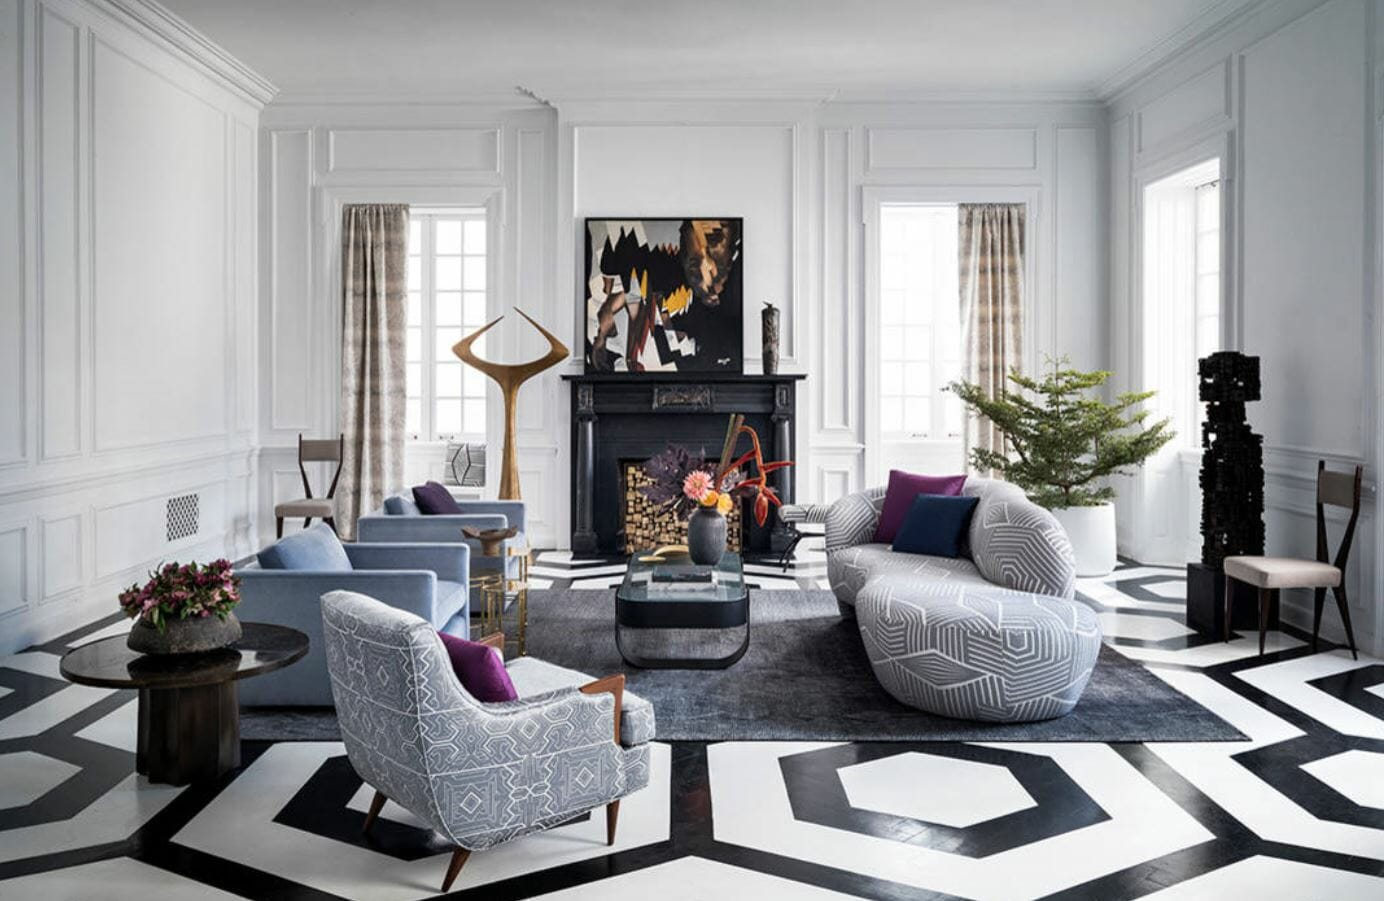 7 best winter 2019 interior design trends to try in your home - Interior design trends 2019 ...